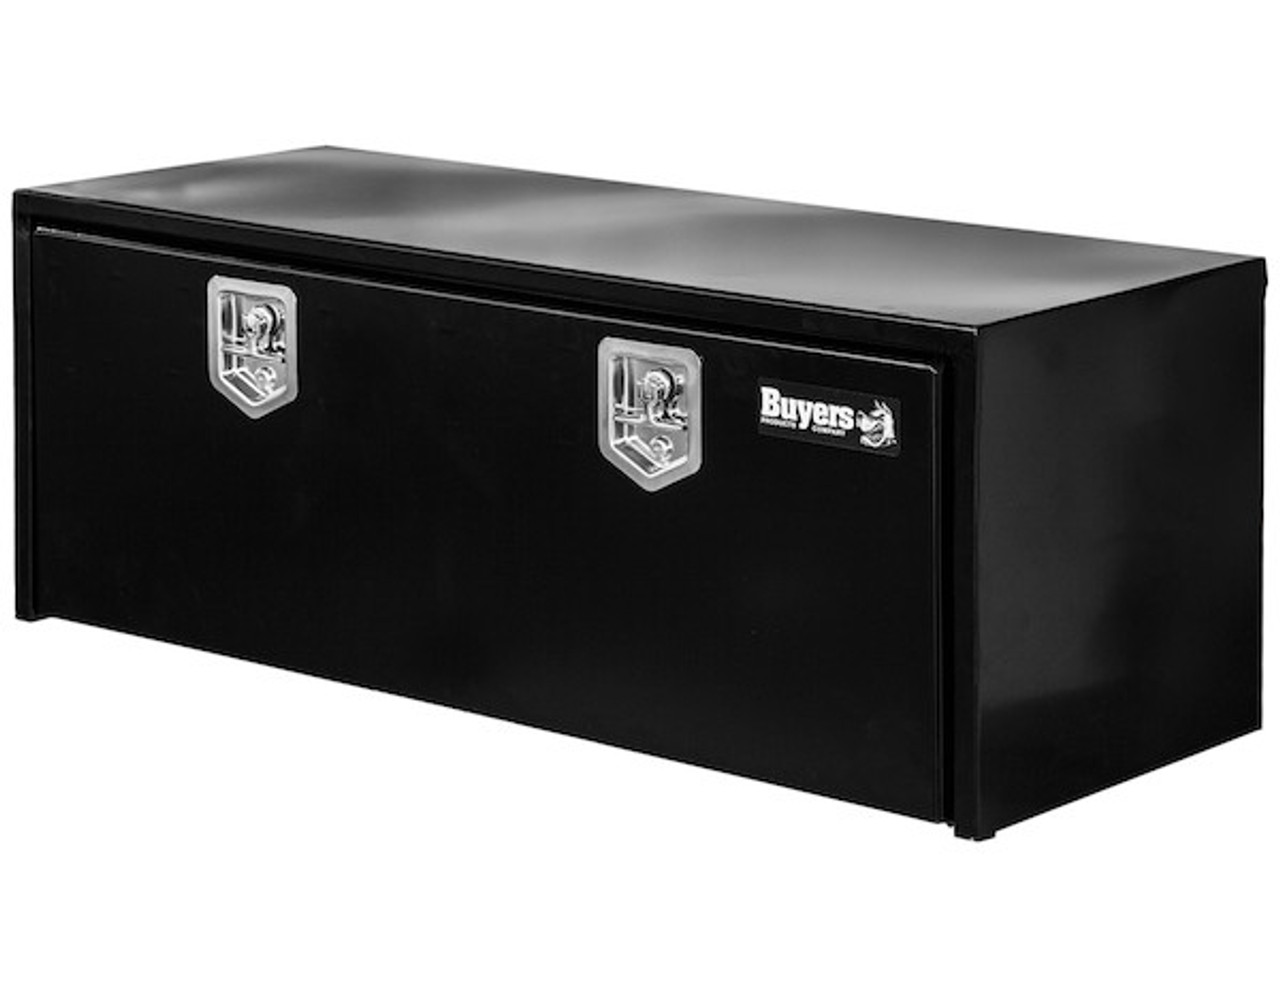 "1708310 BUYERS PRODUCTS BLACK STEEL UNDERBODY TRUCK BOX WITH T-LATCH TOOLBOX 18""HX24""DX48""W"